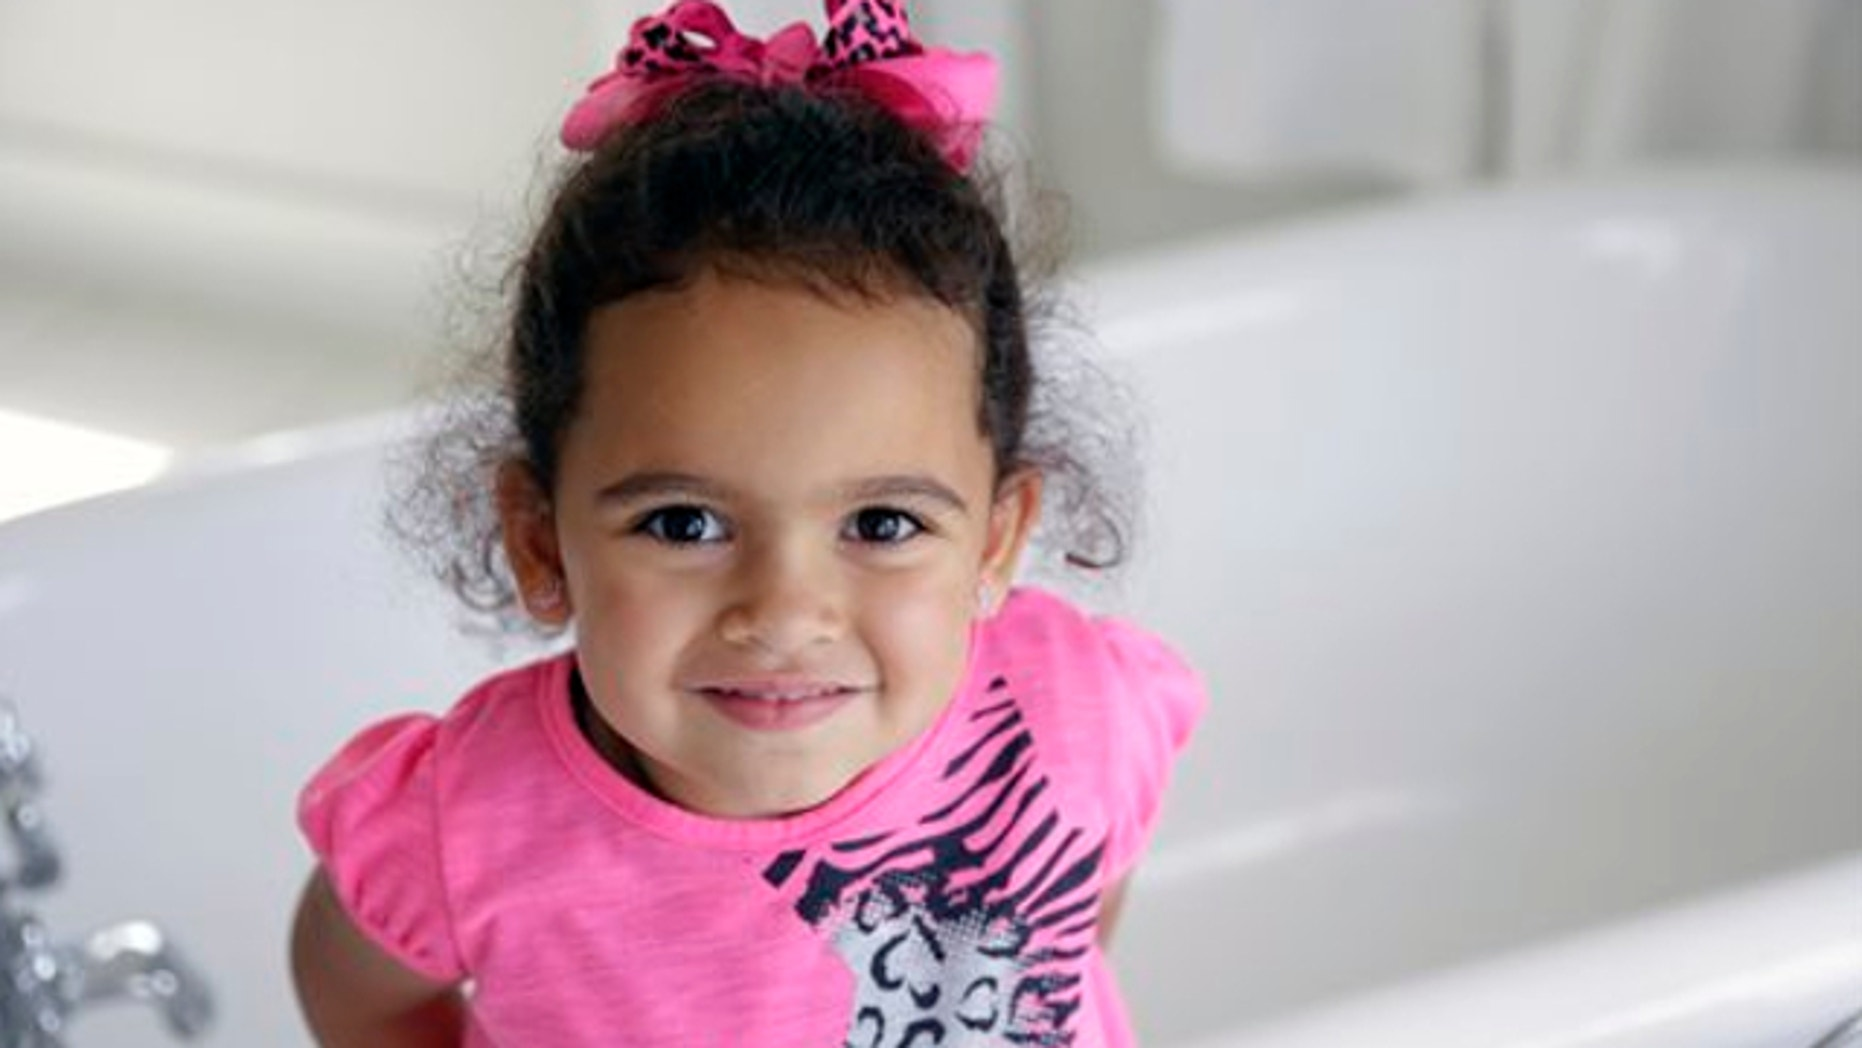 Aug. 6, 2013: Veronica, the 4-year-old Cherokee girl at the center of an adoption dispute, smiles in a bathroom of the Cherokee Nation Jack Brown Center in Tahlequah, Okla.